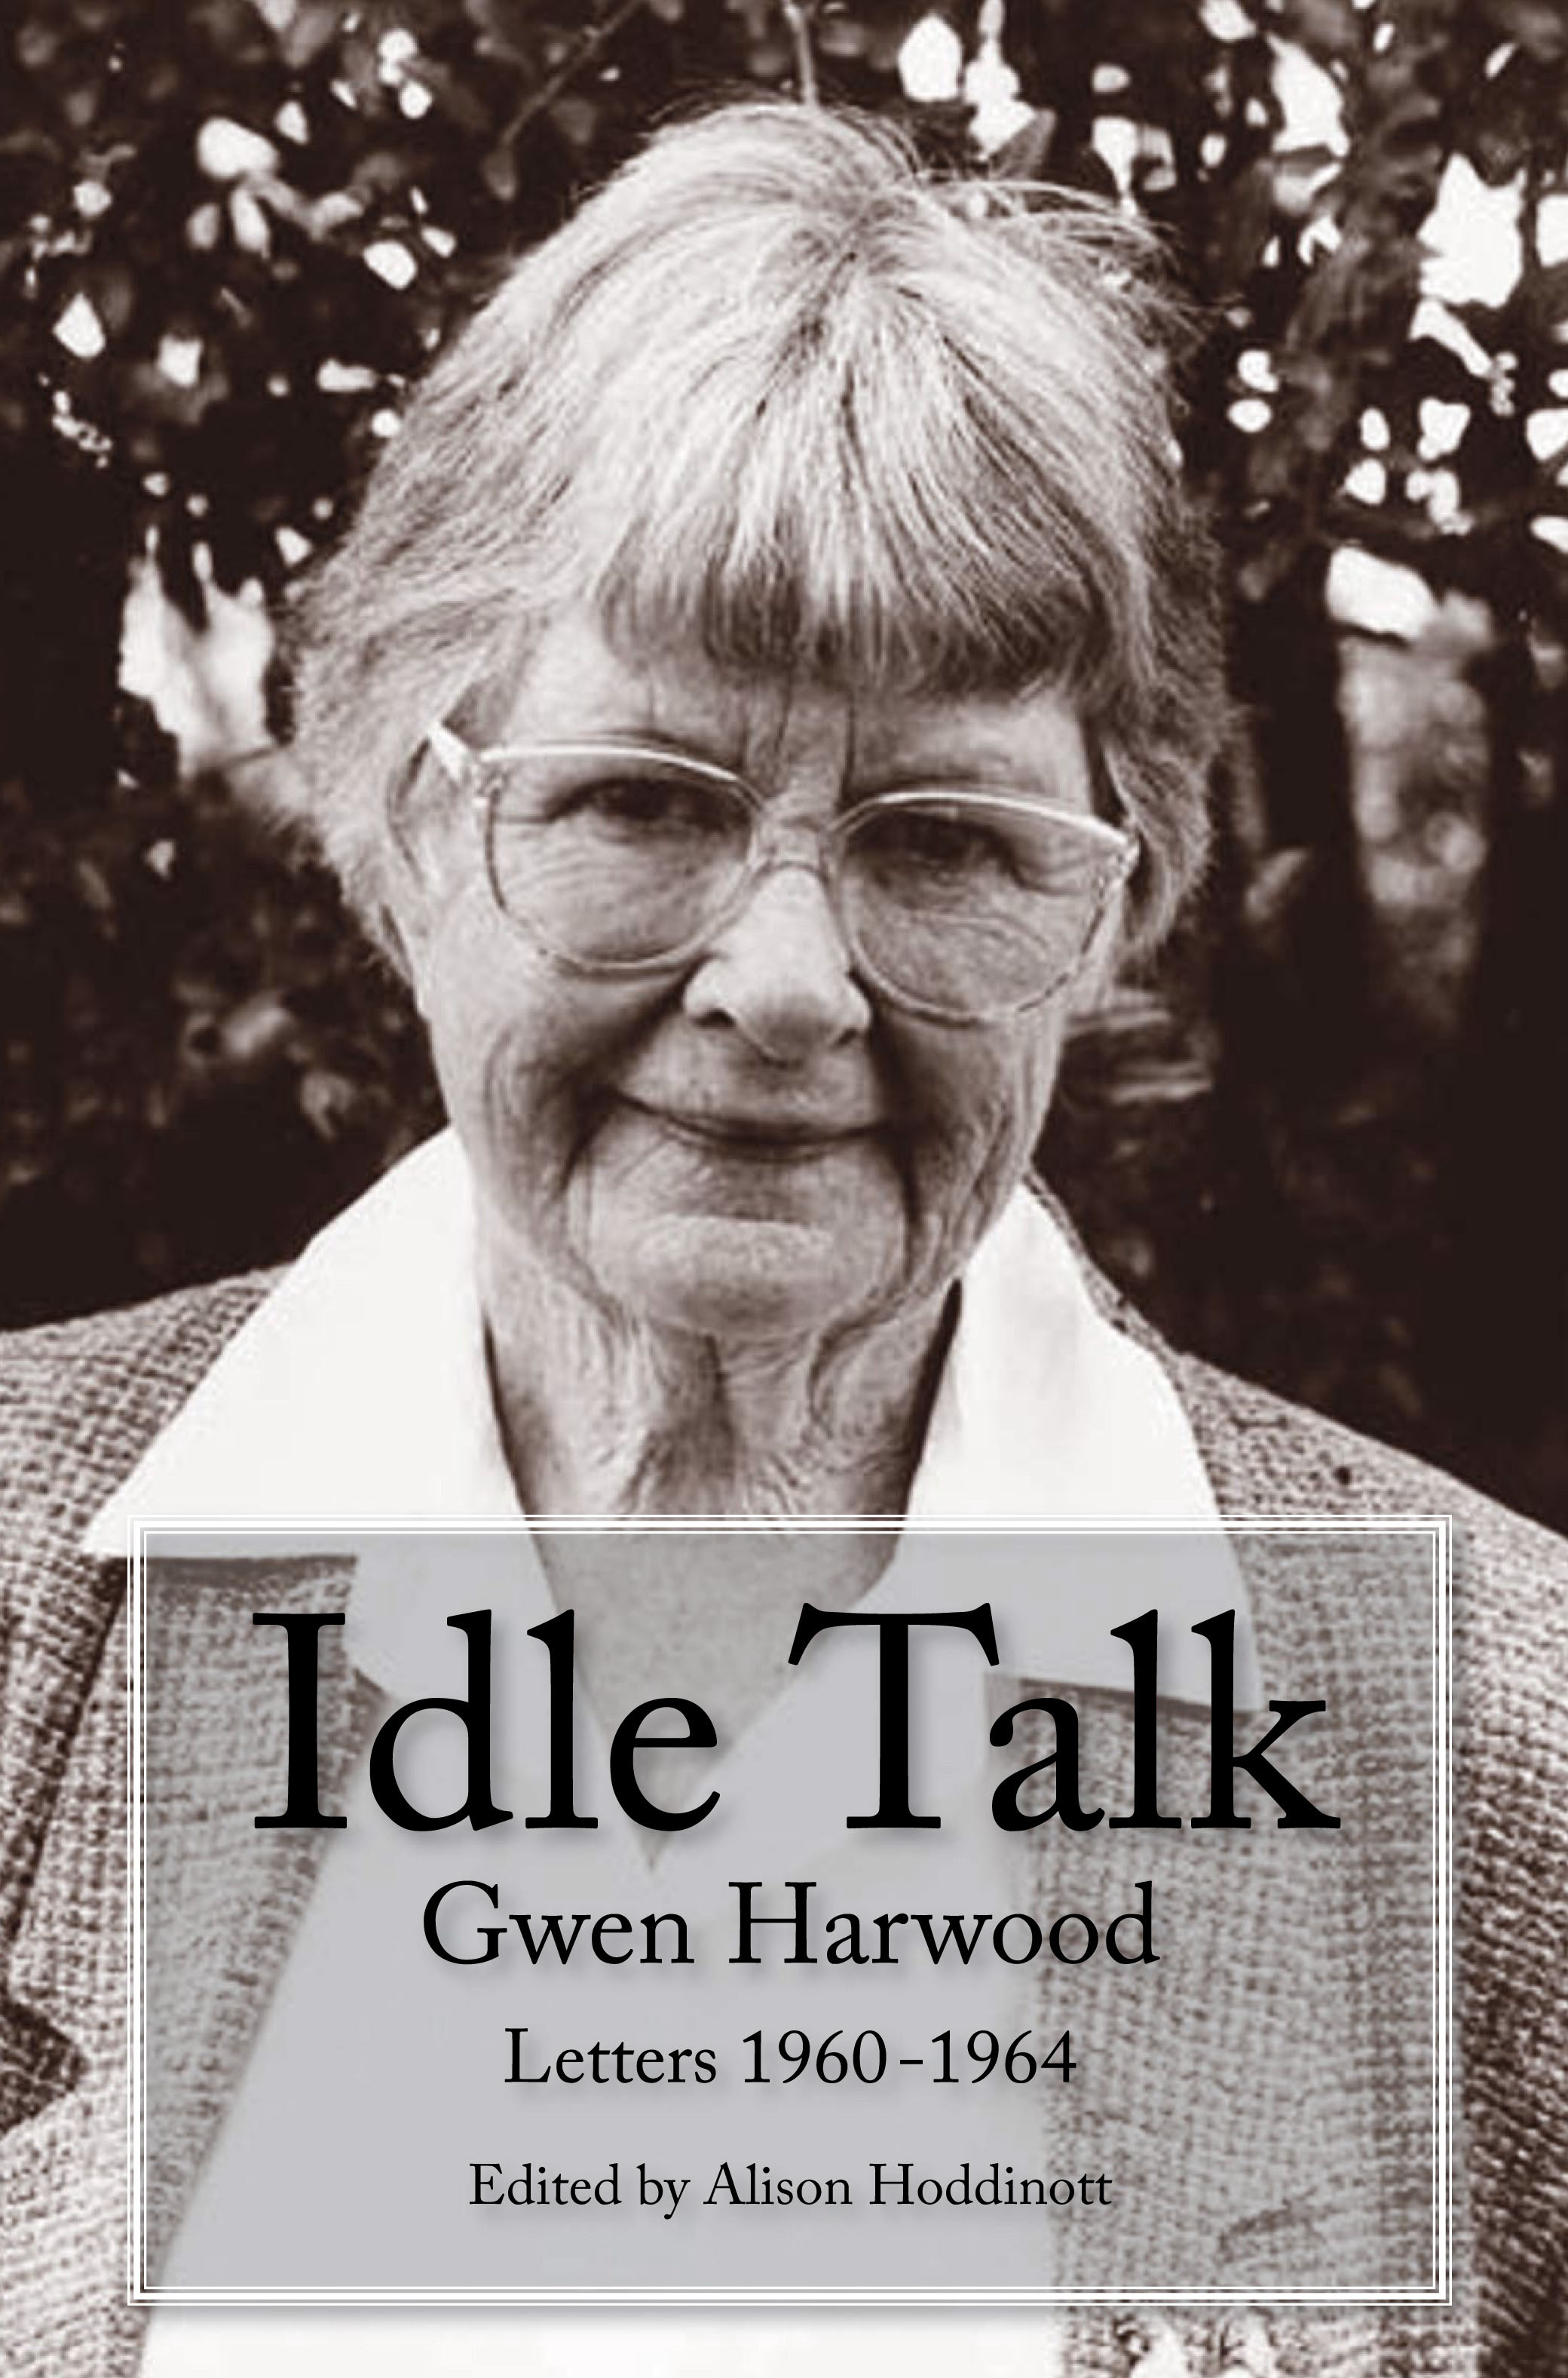 review short gwen harwood s idle talk letters edited review short gwen harwood s idle talk letters 1960 1964 edited by alison hoddinott